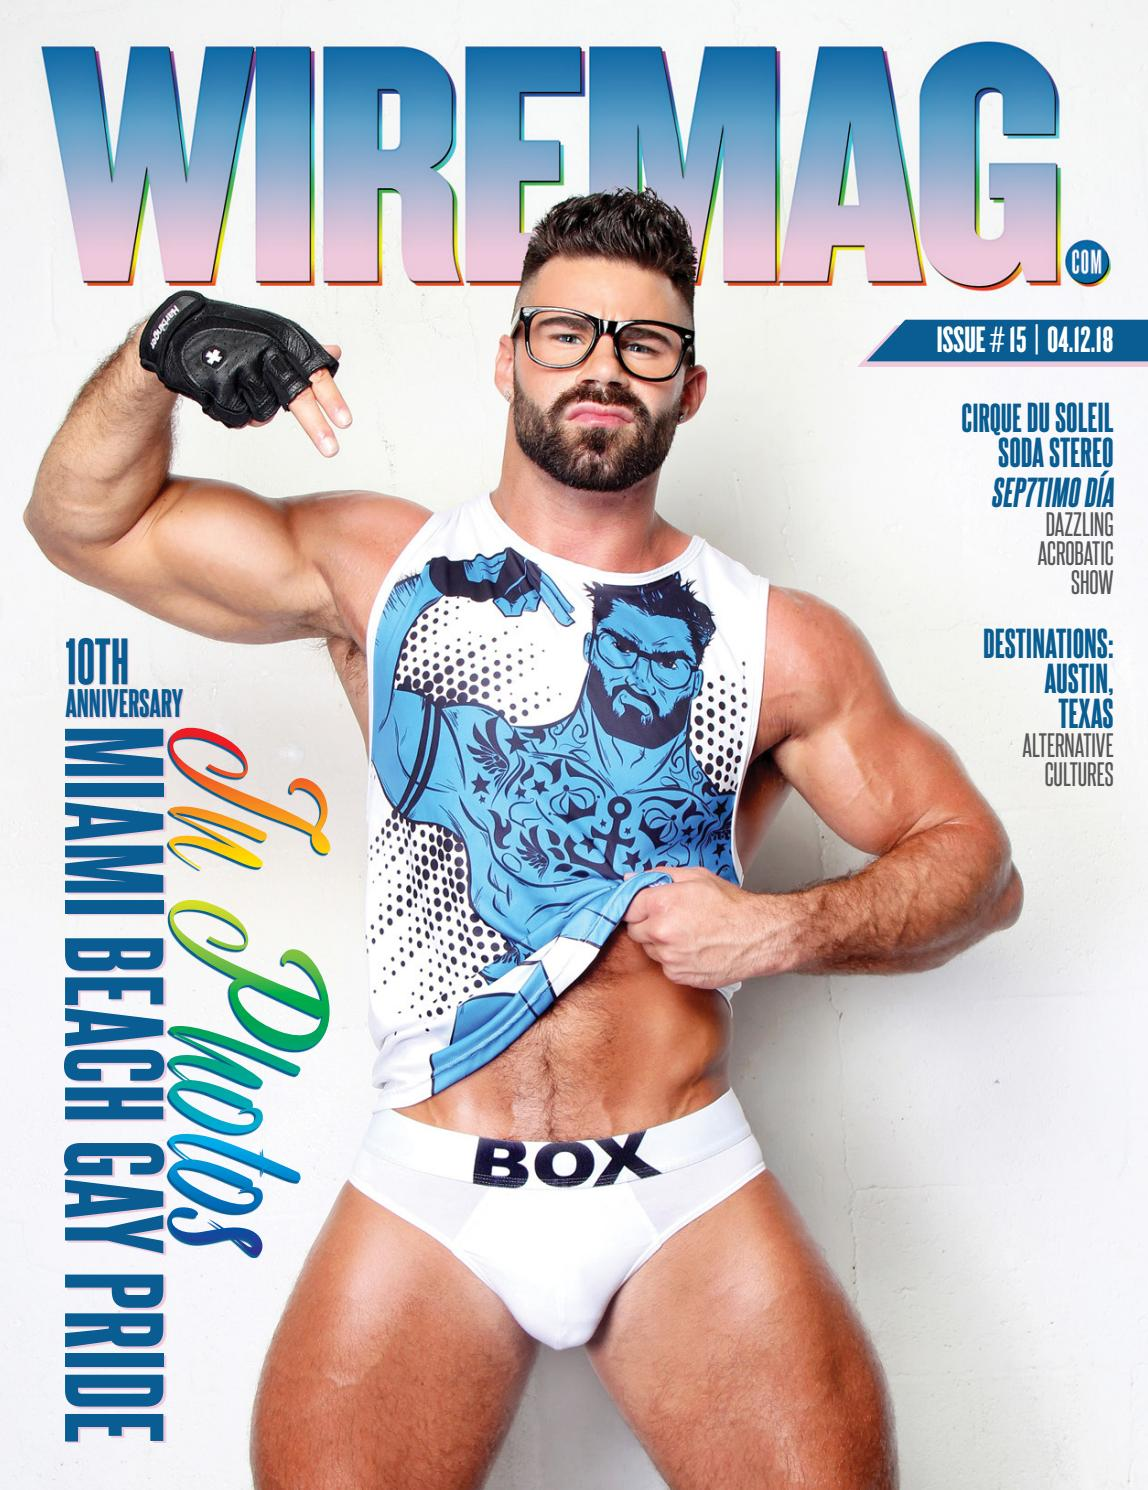 Wire Magazine 15.2018 Miami Beach Gay Pride in Photos by Wire Media Group -  issuu